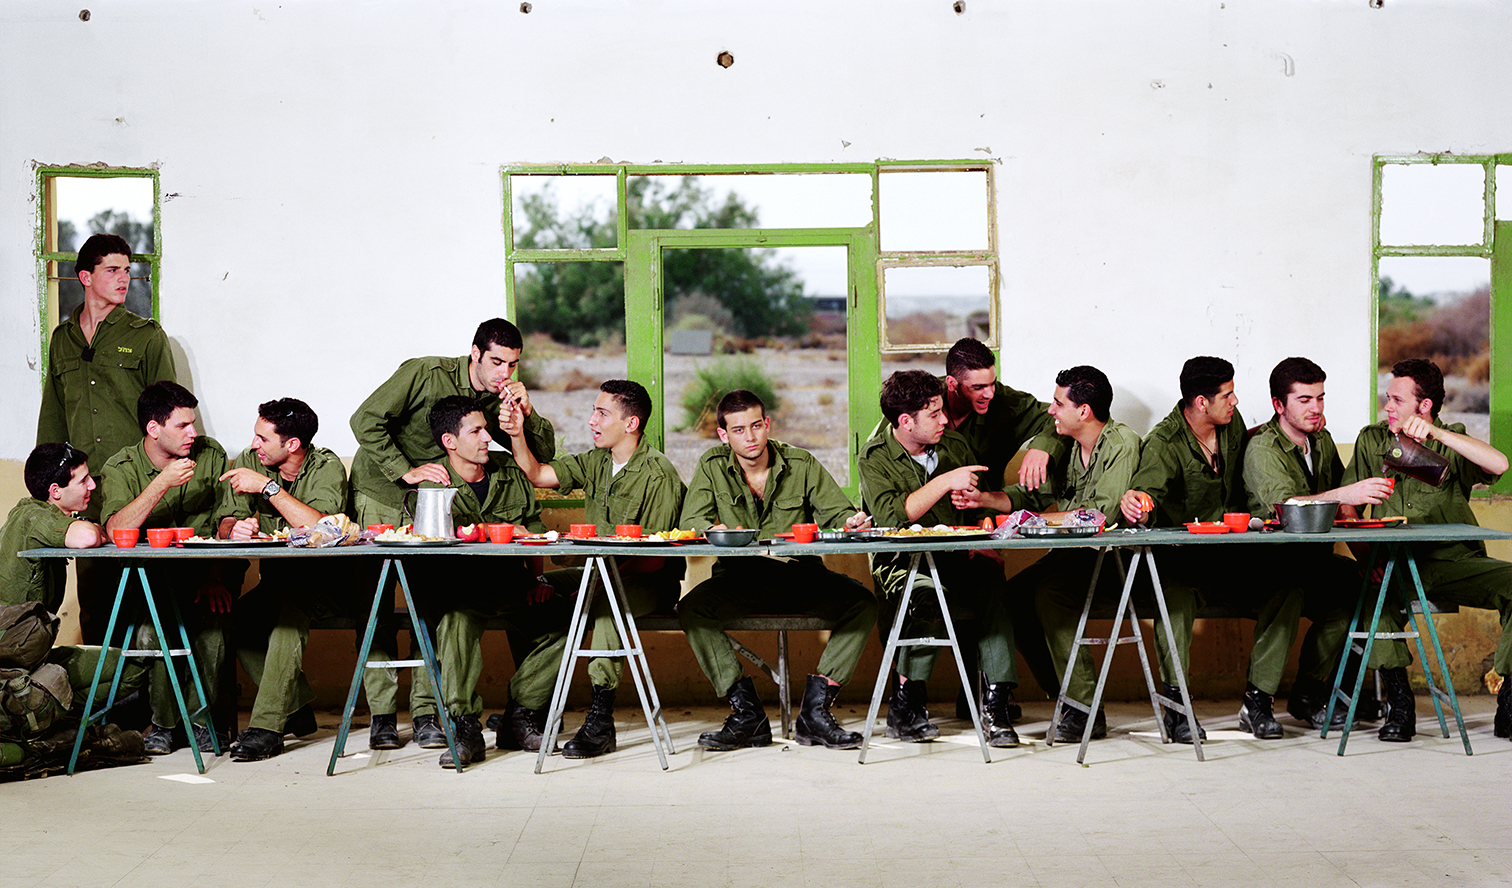 Adi Nes - Last Supper, 1996